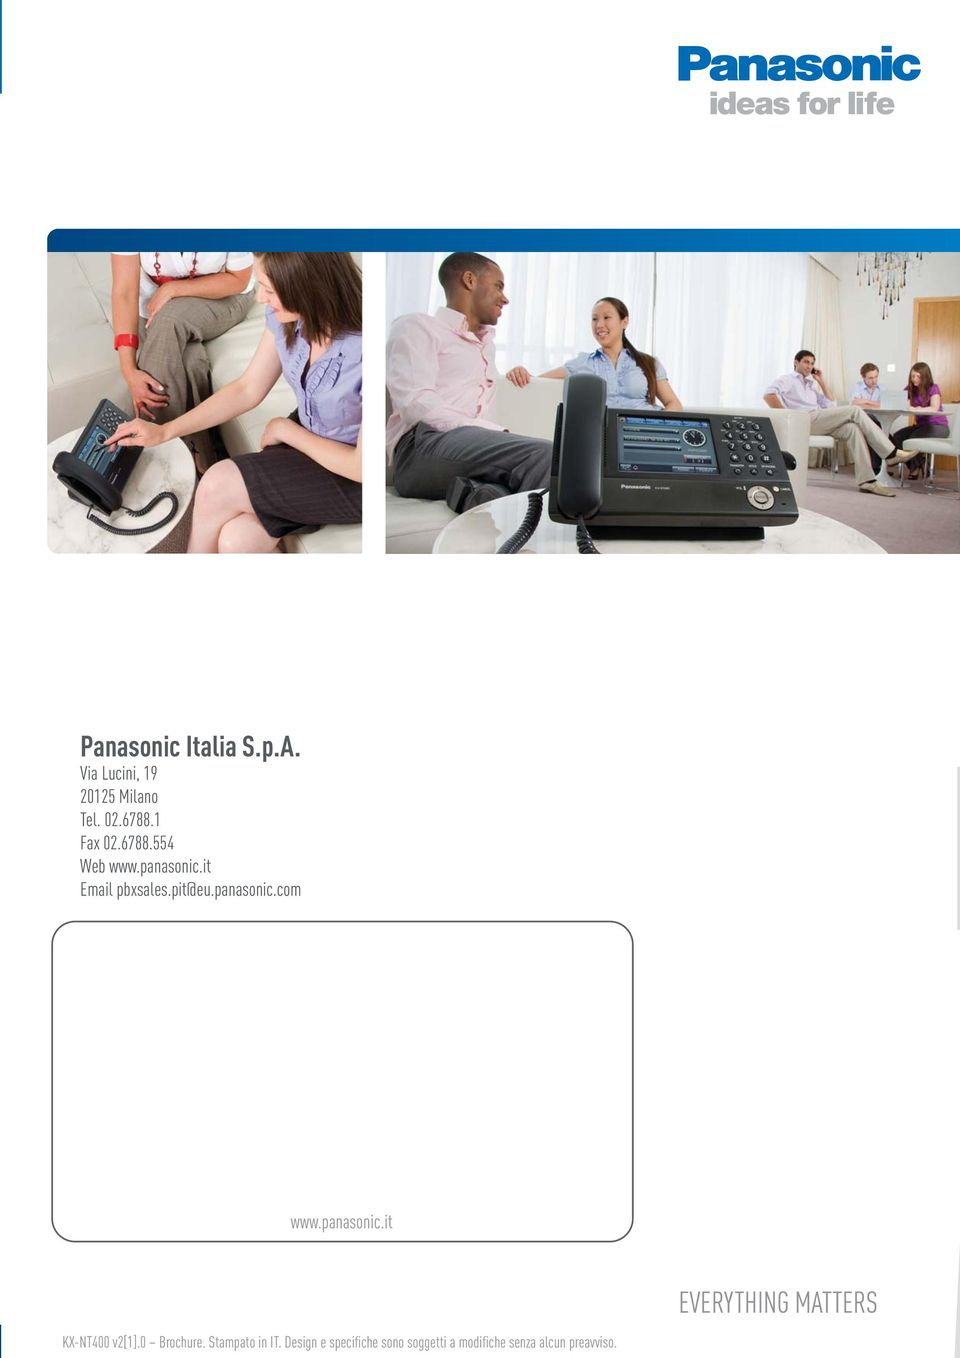 panasonic.it KX-NT400 v2[1].0 Brochure. Stampato in IT.